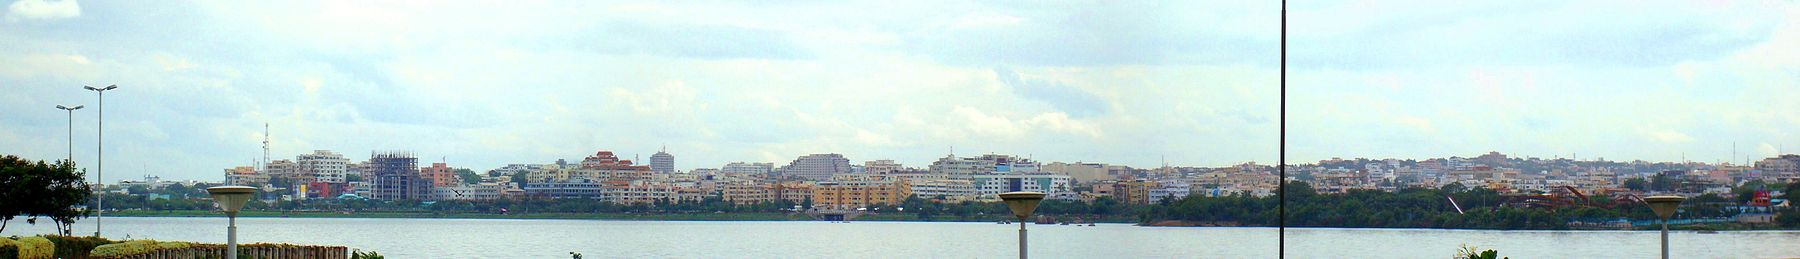 a view of buildings along located on the banks of lake